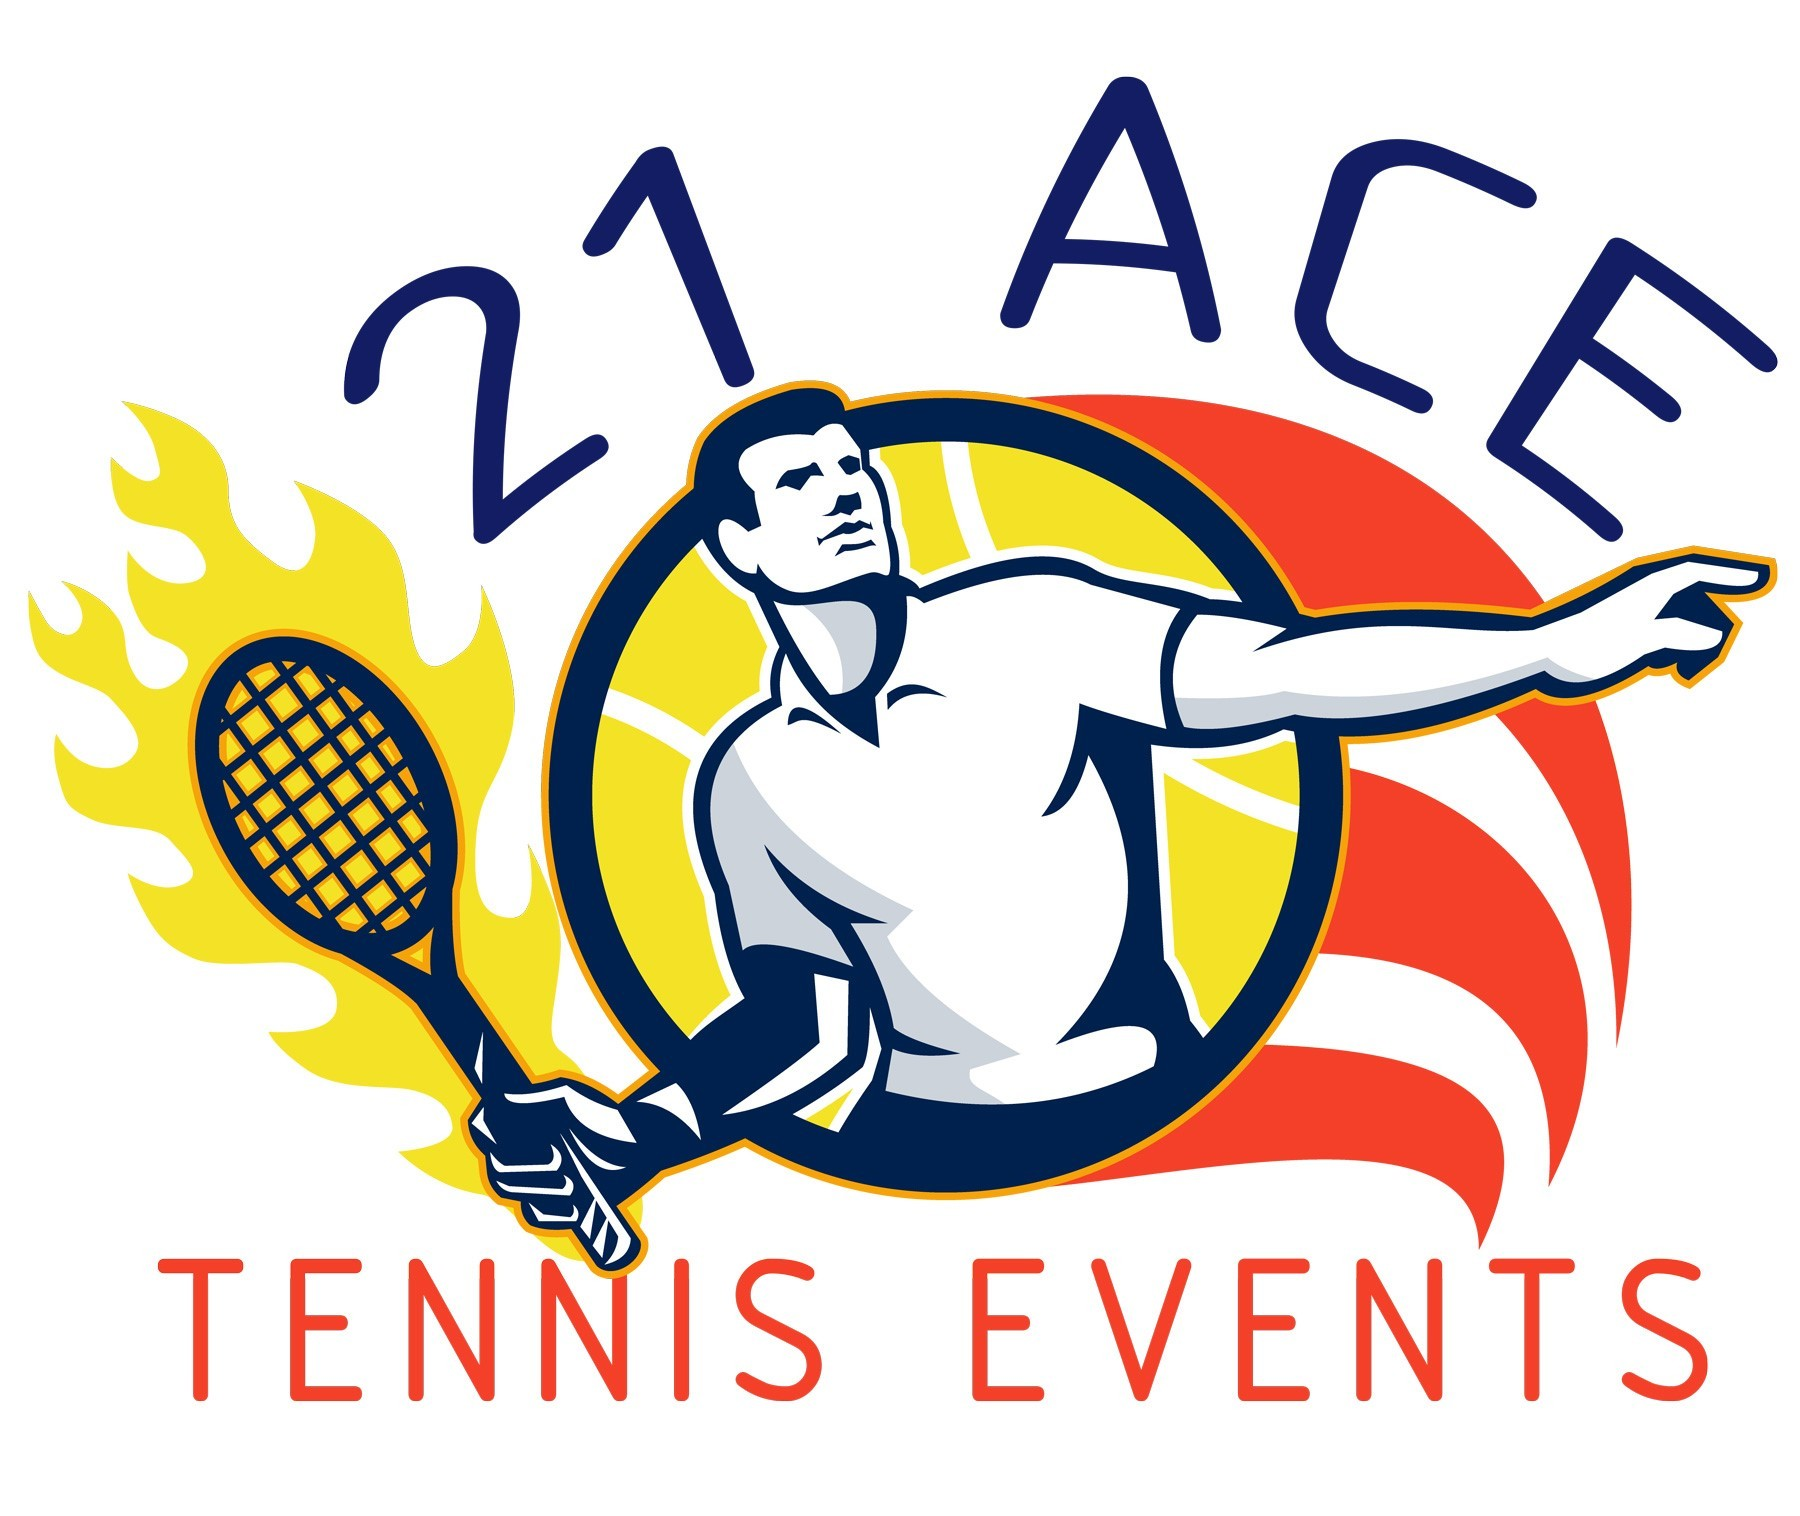 21Ace Tennis Events